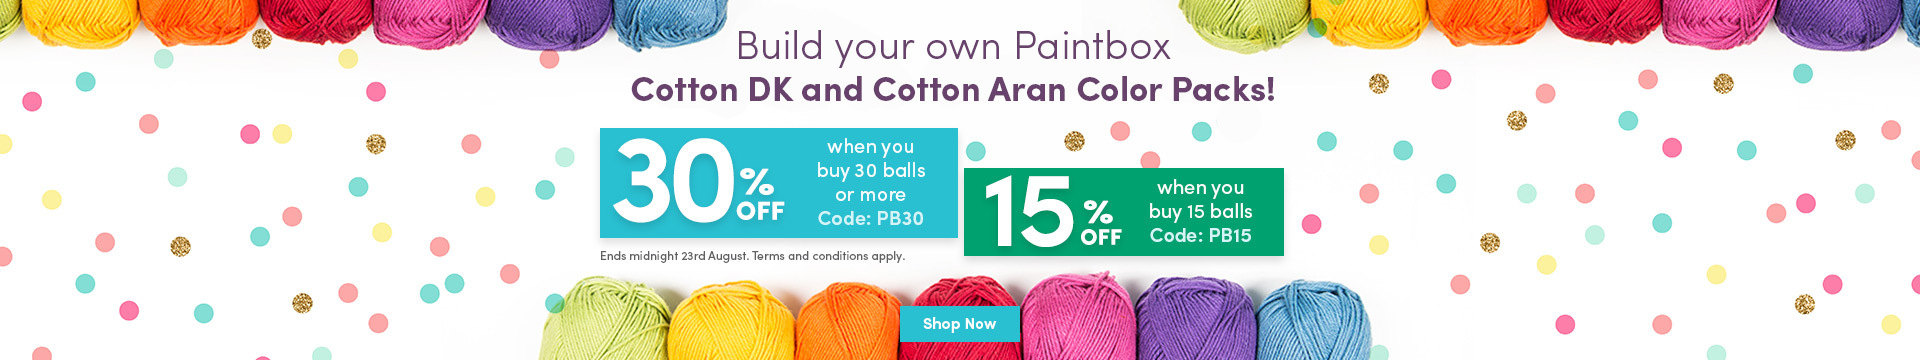 LK Marketing - NA Paintbox Cotton